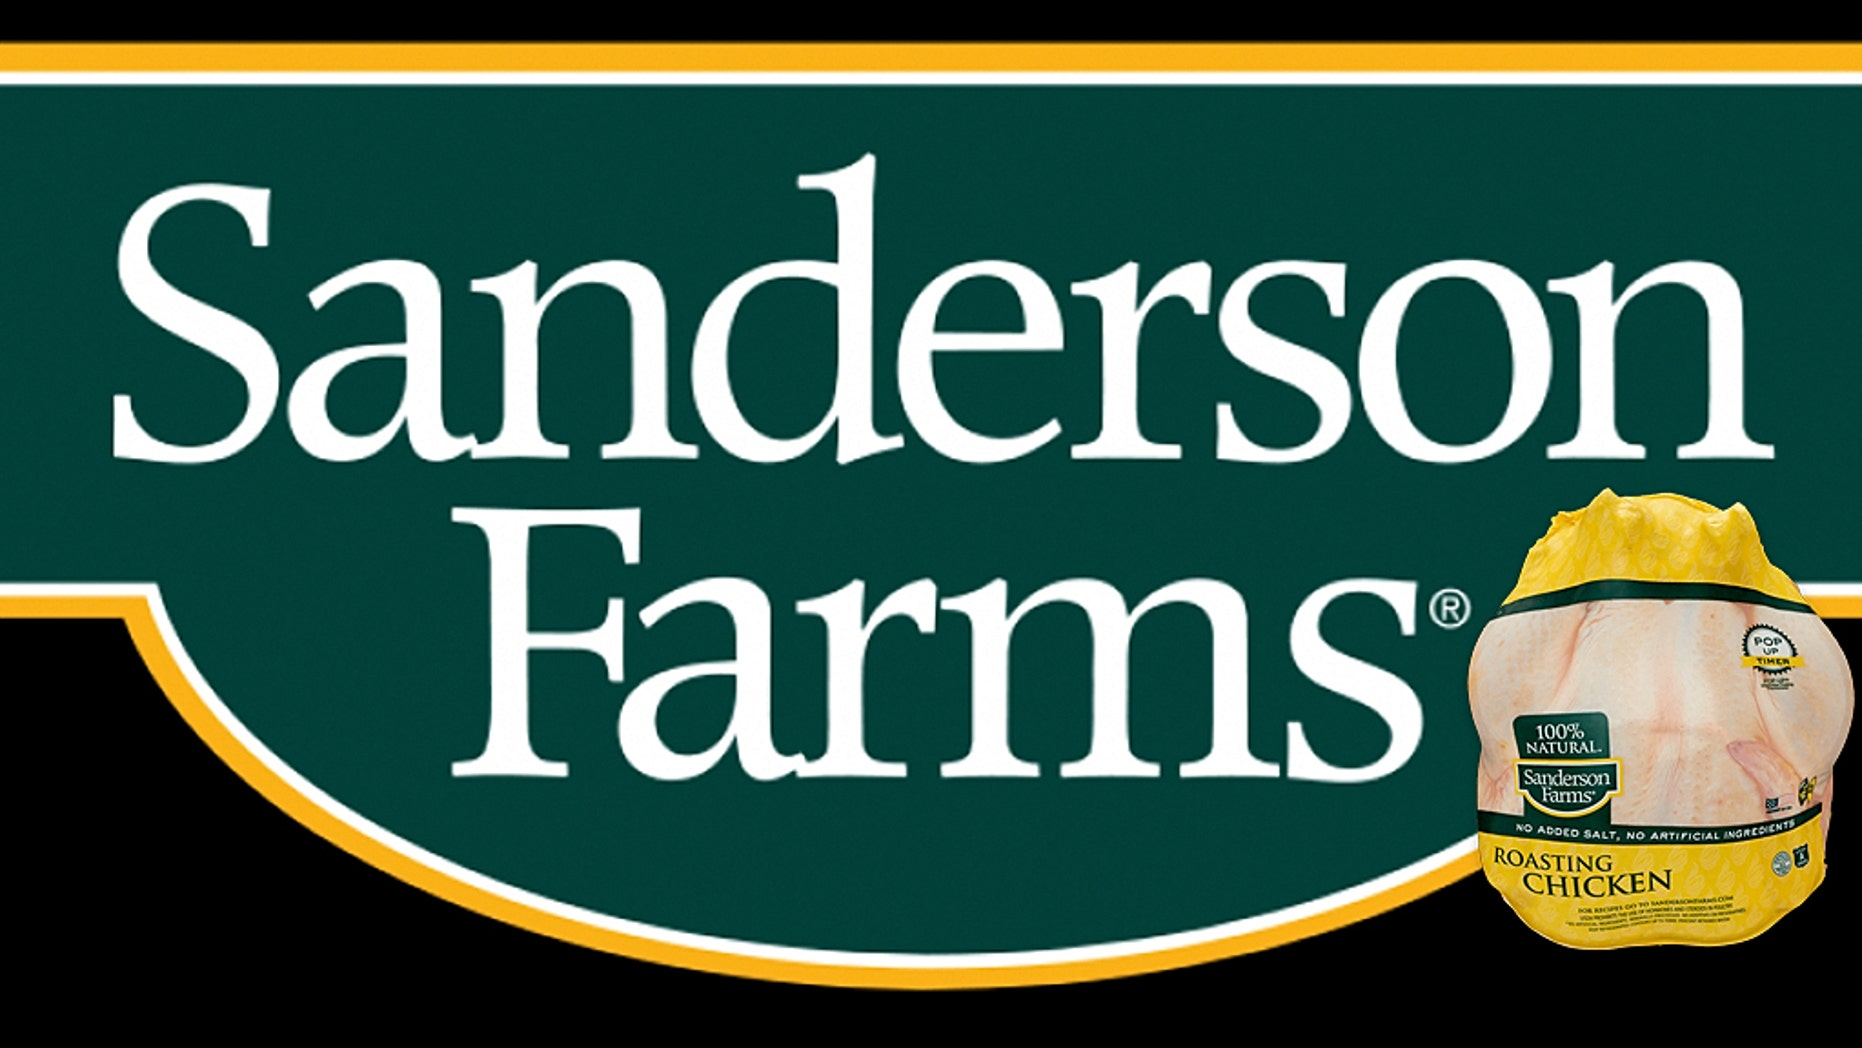 Sanderson Farms says more than a million chickens have died due to flooding caused by Hurricane Florence.